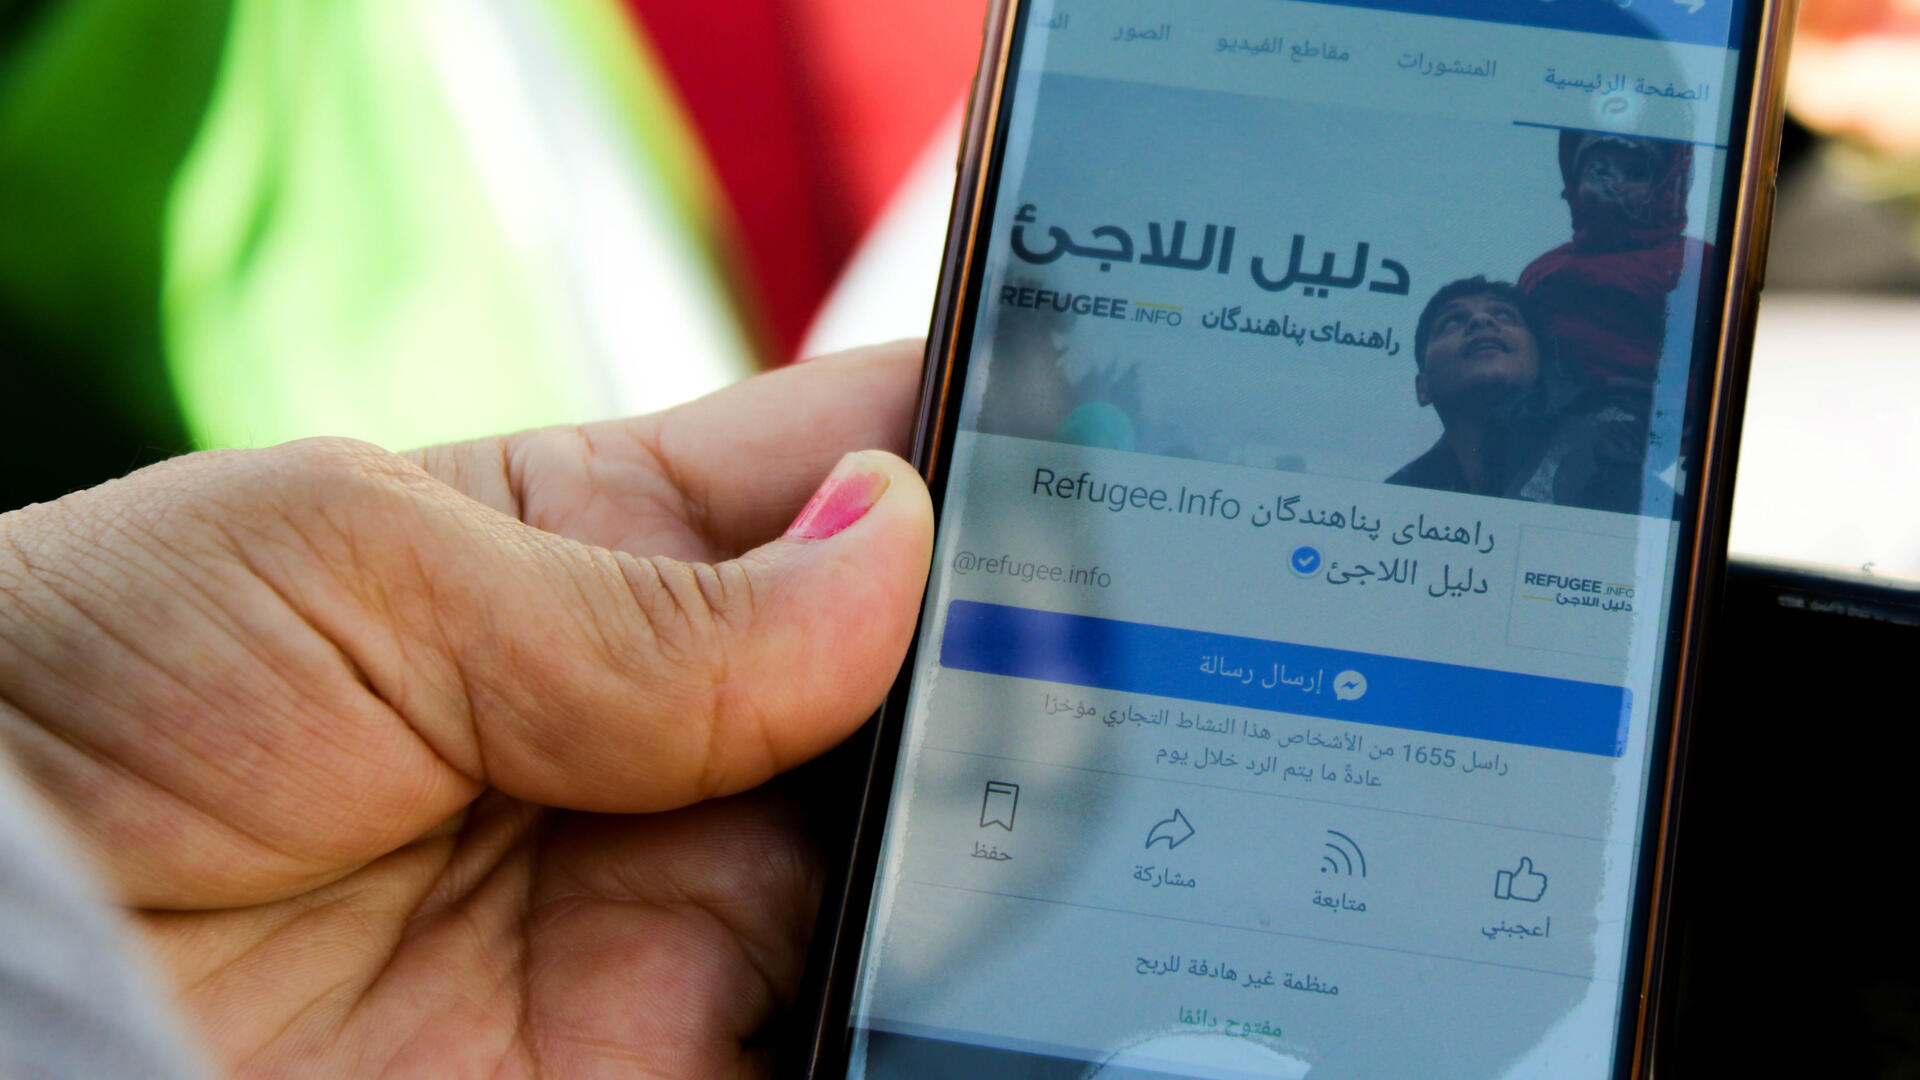 The Refugee.Info website shown on a mobile phone